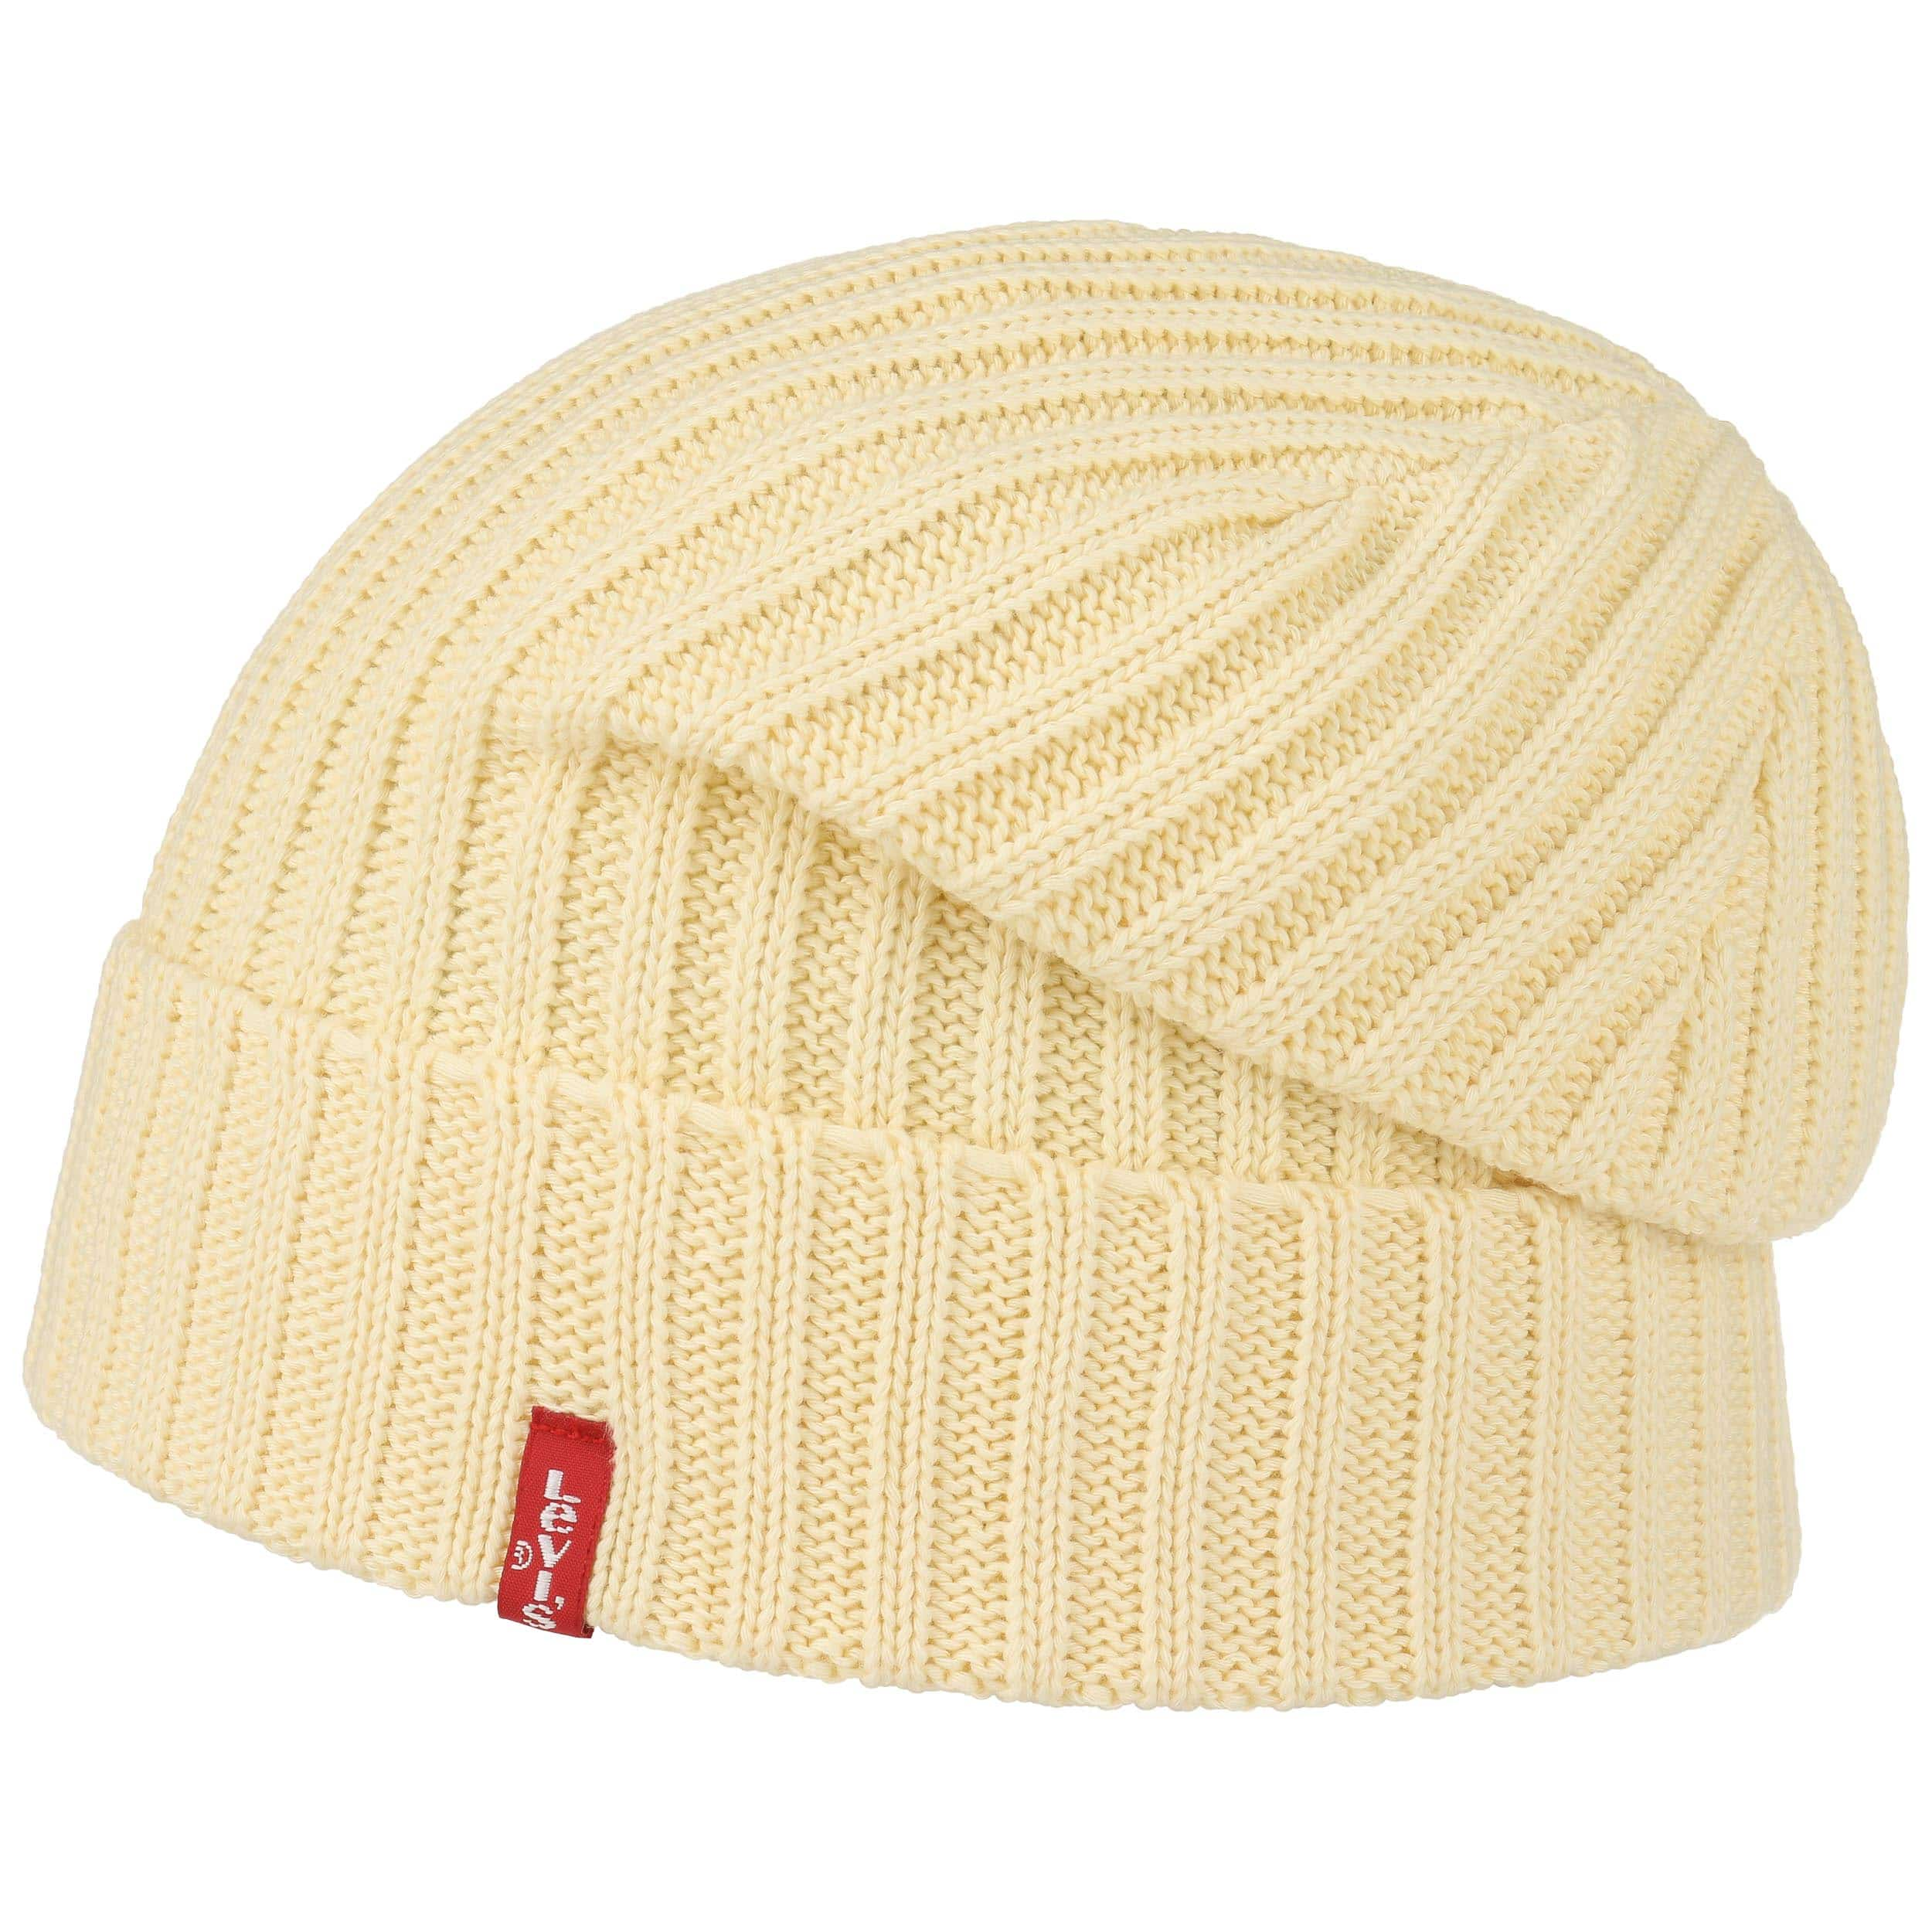 adc892ce00f Ribbed Beanie in Yellow Yellow Levi s 1hU9WArCS - cg-powell.com